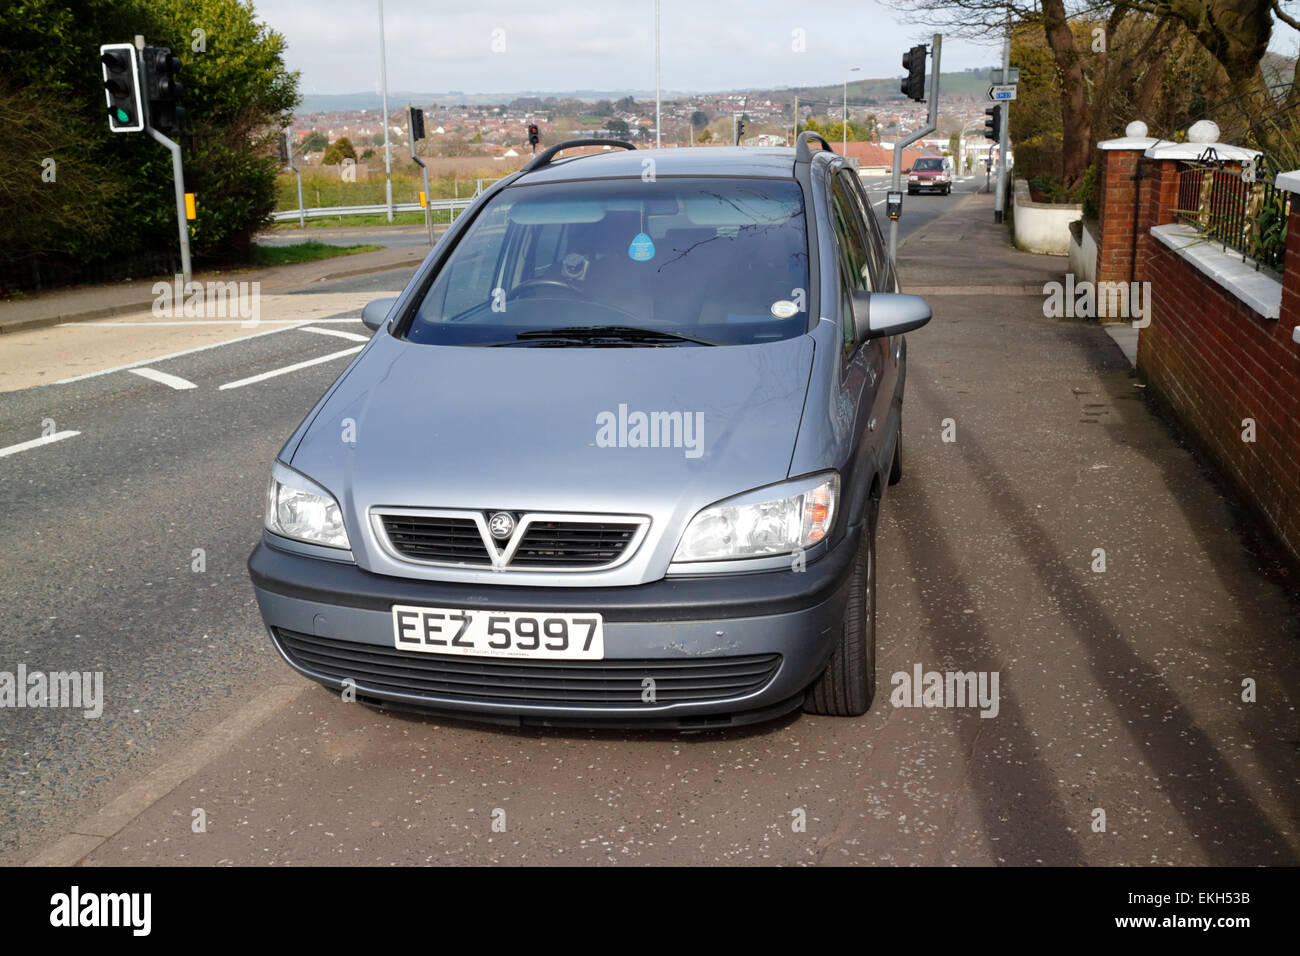 car parked on pavement outside homes in residential suburban street - Stock Image